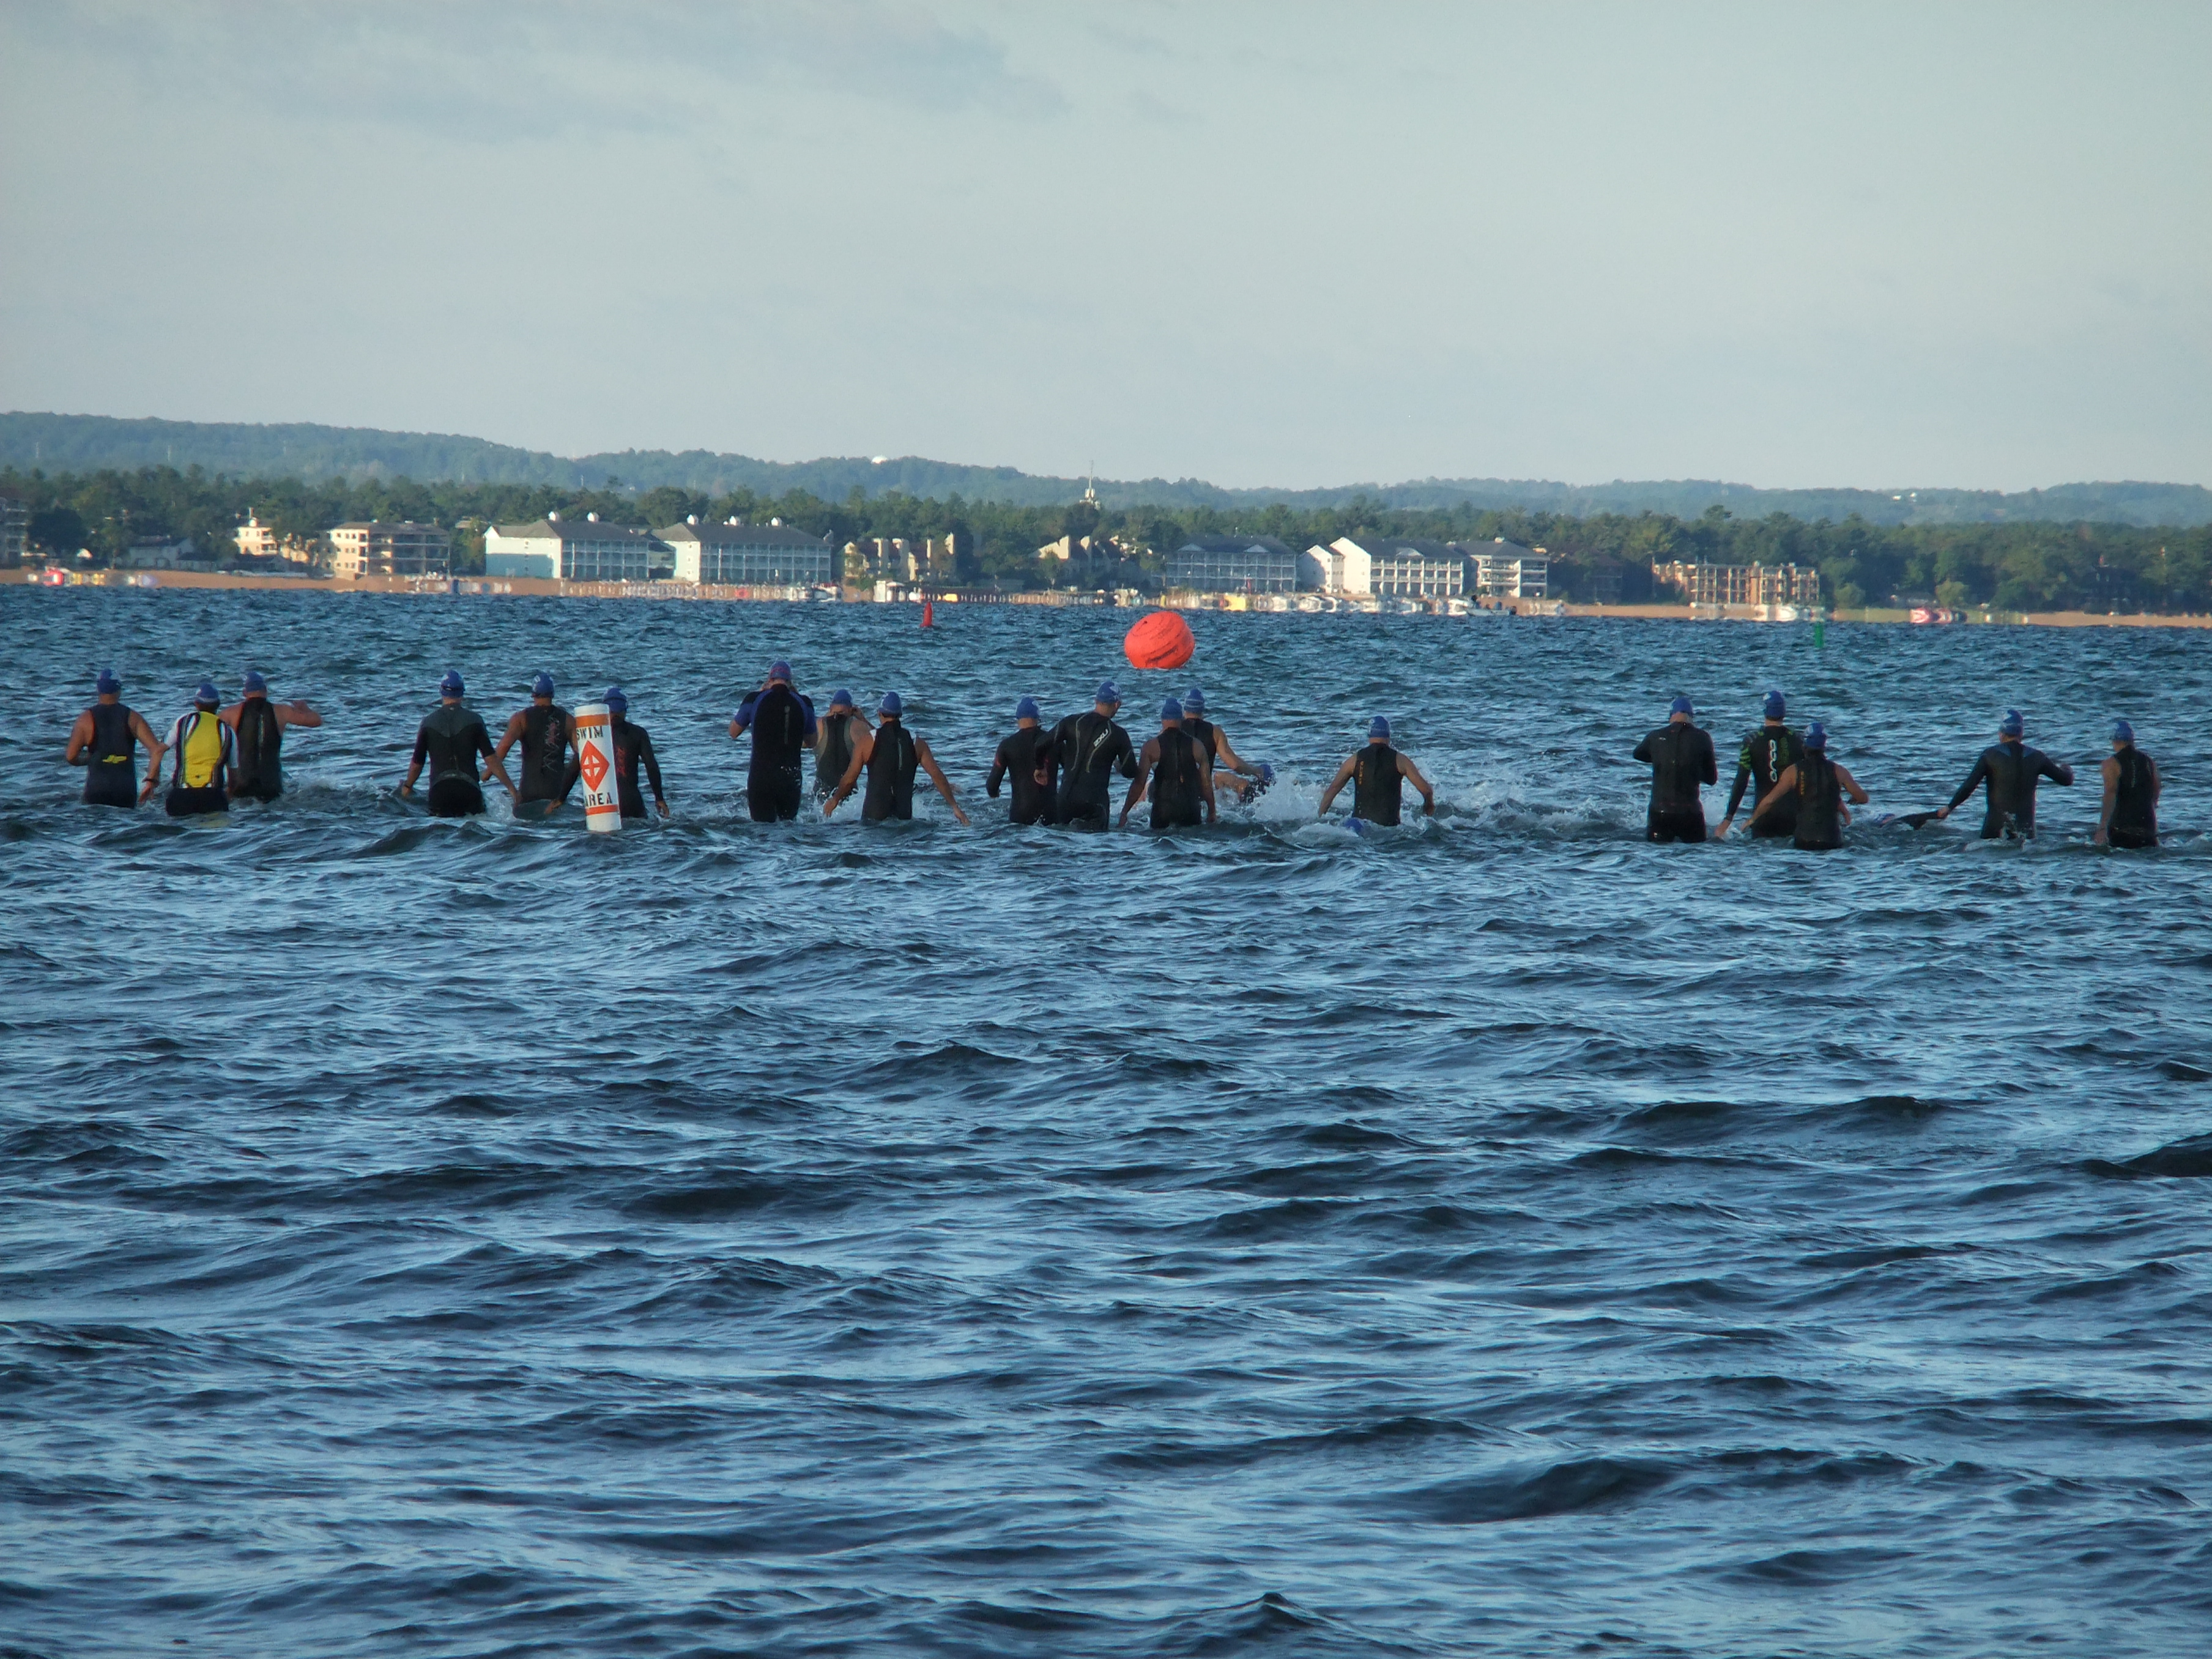 Getting into the Bay at the Barefoot Triathlon